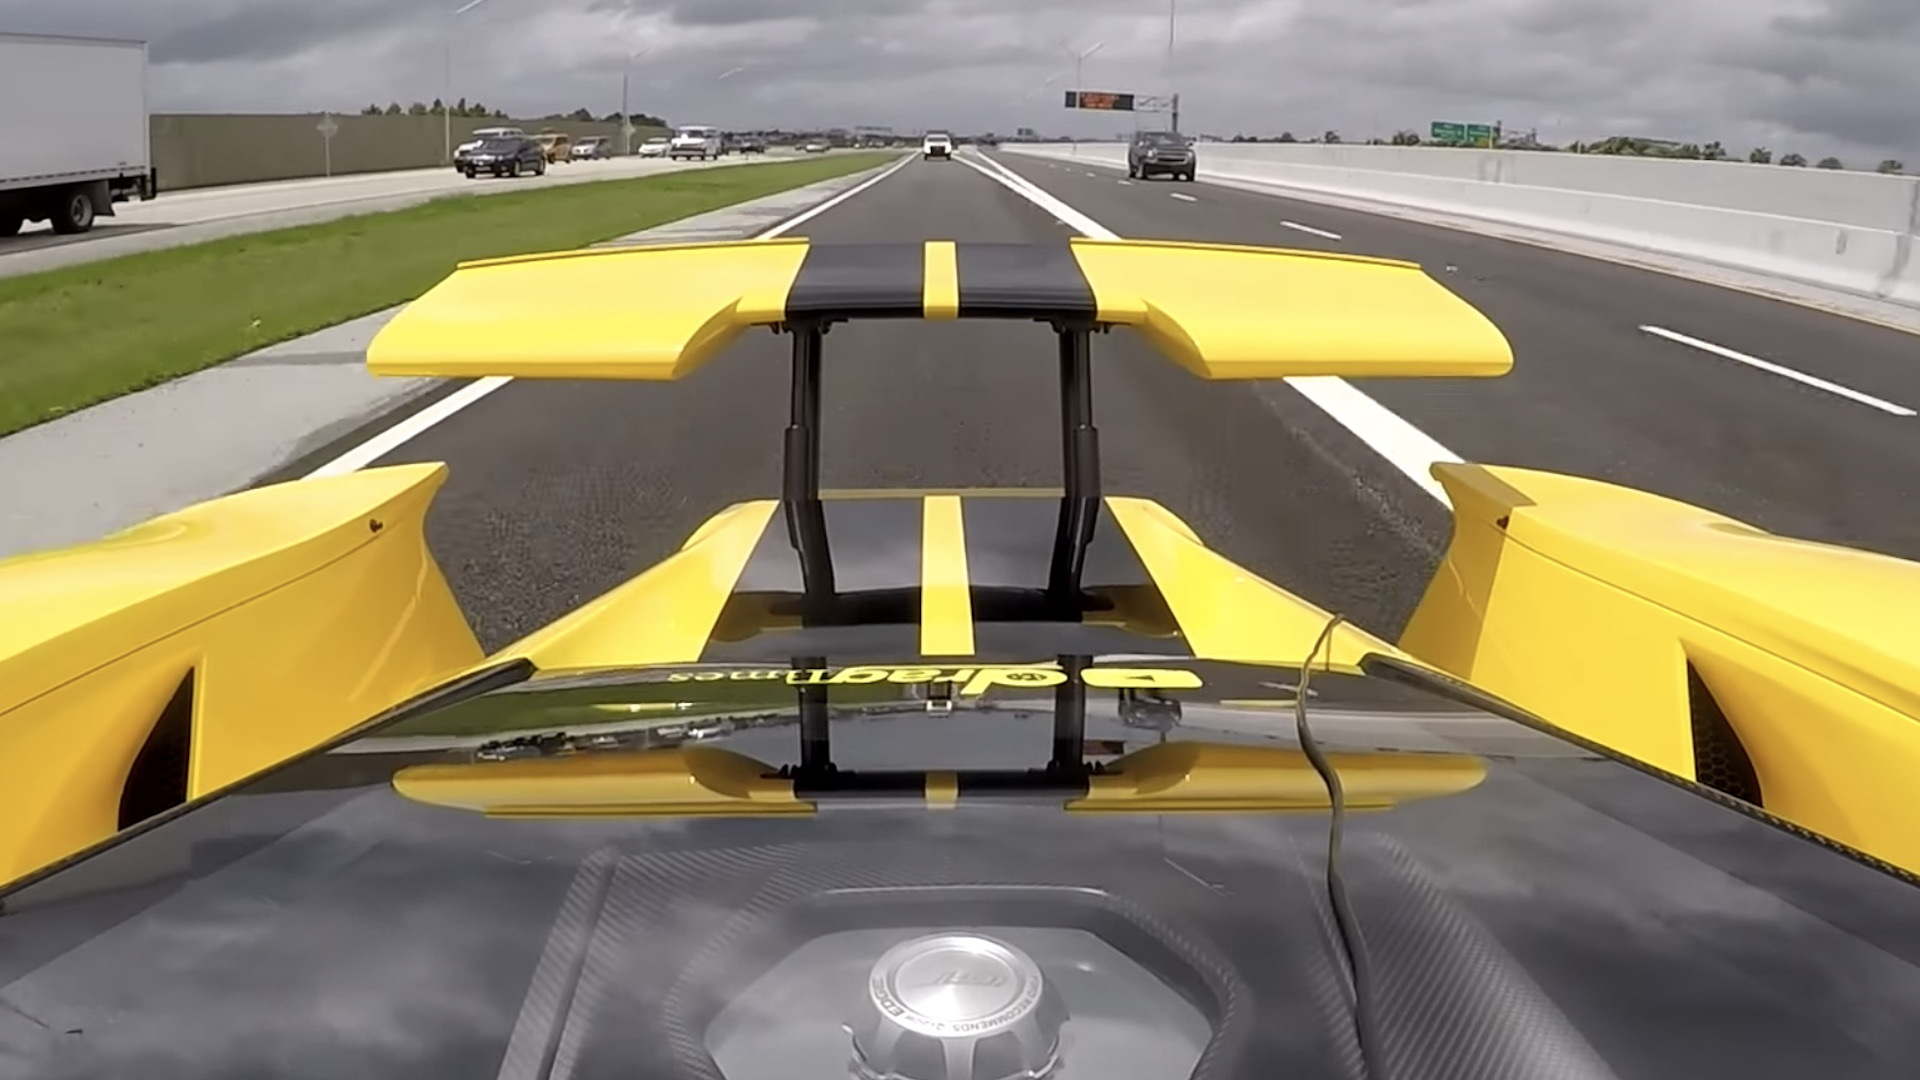 Ford GT active aero rear wing video